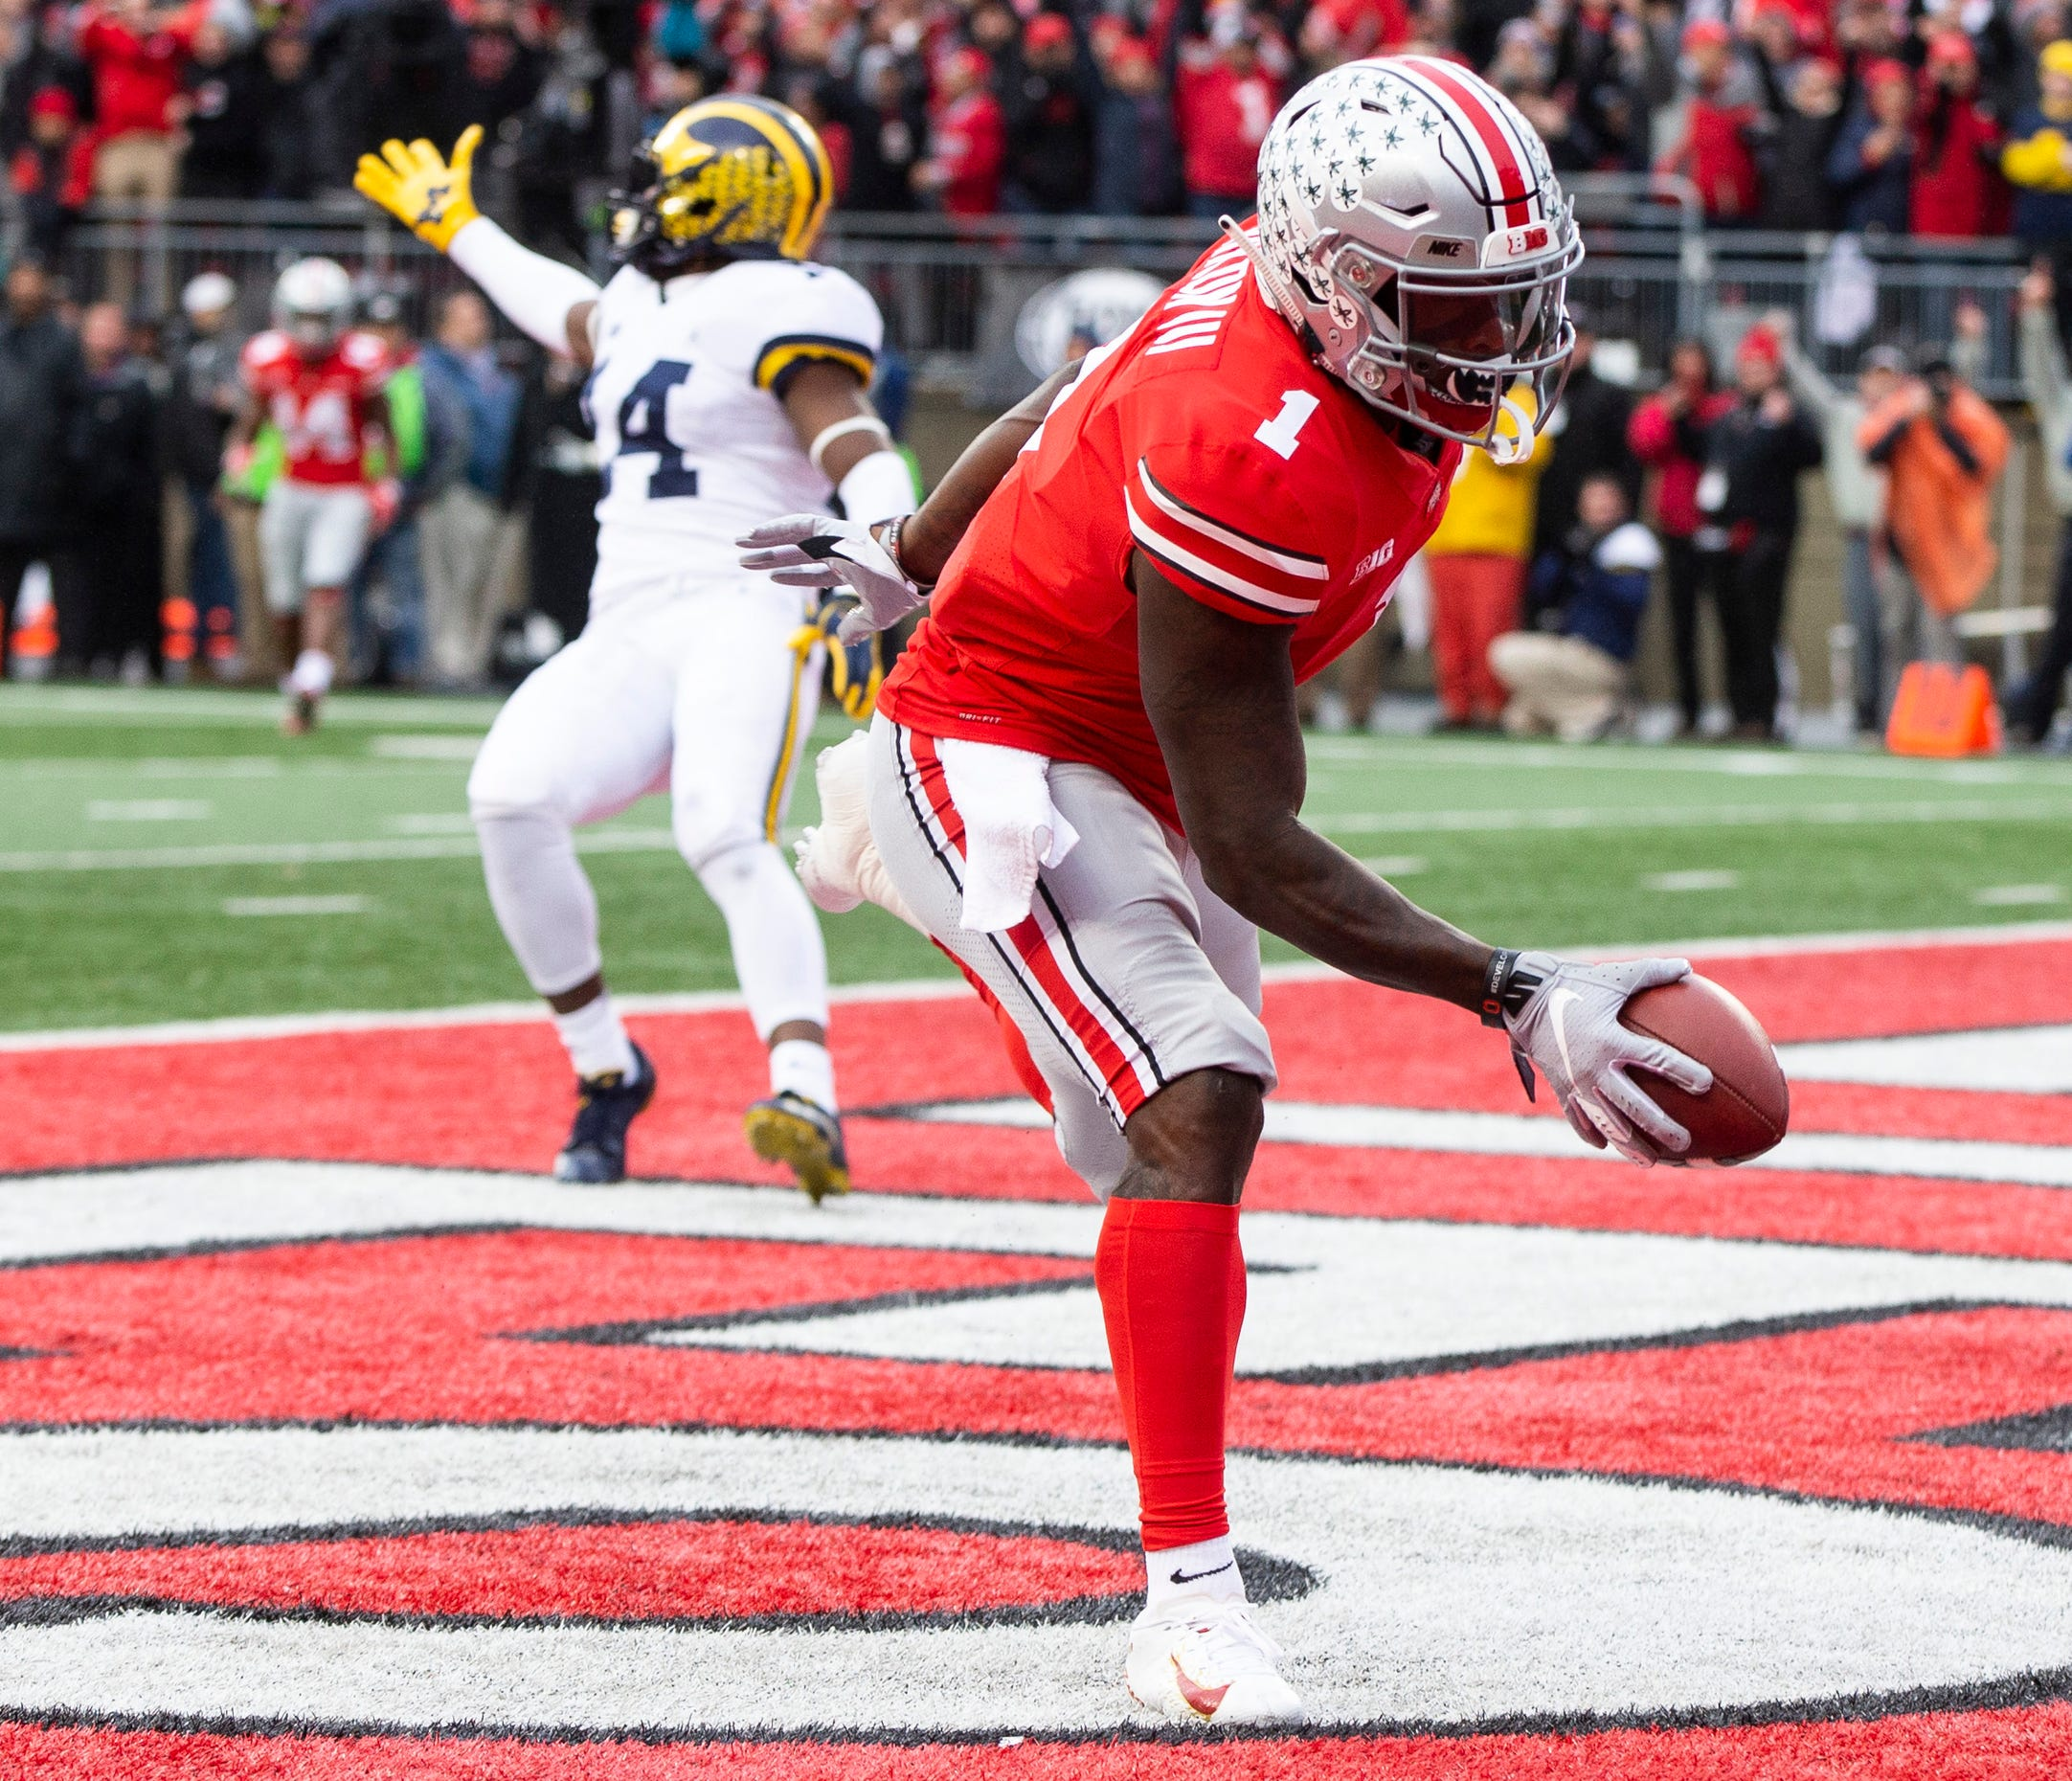 Ohio State's Johnnie Dixon scores a touchdown as Michigan safety Josh Metellus gestures to the officials last season.